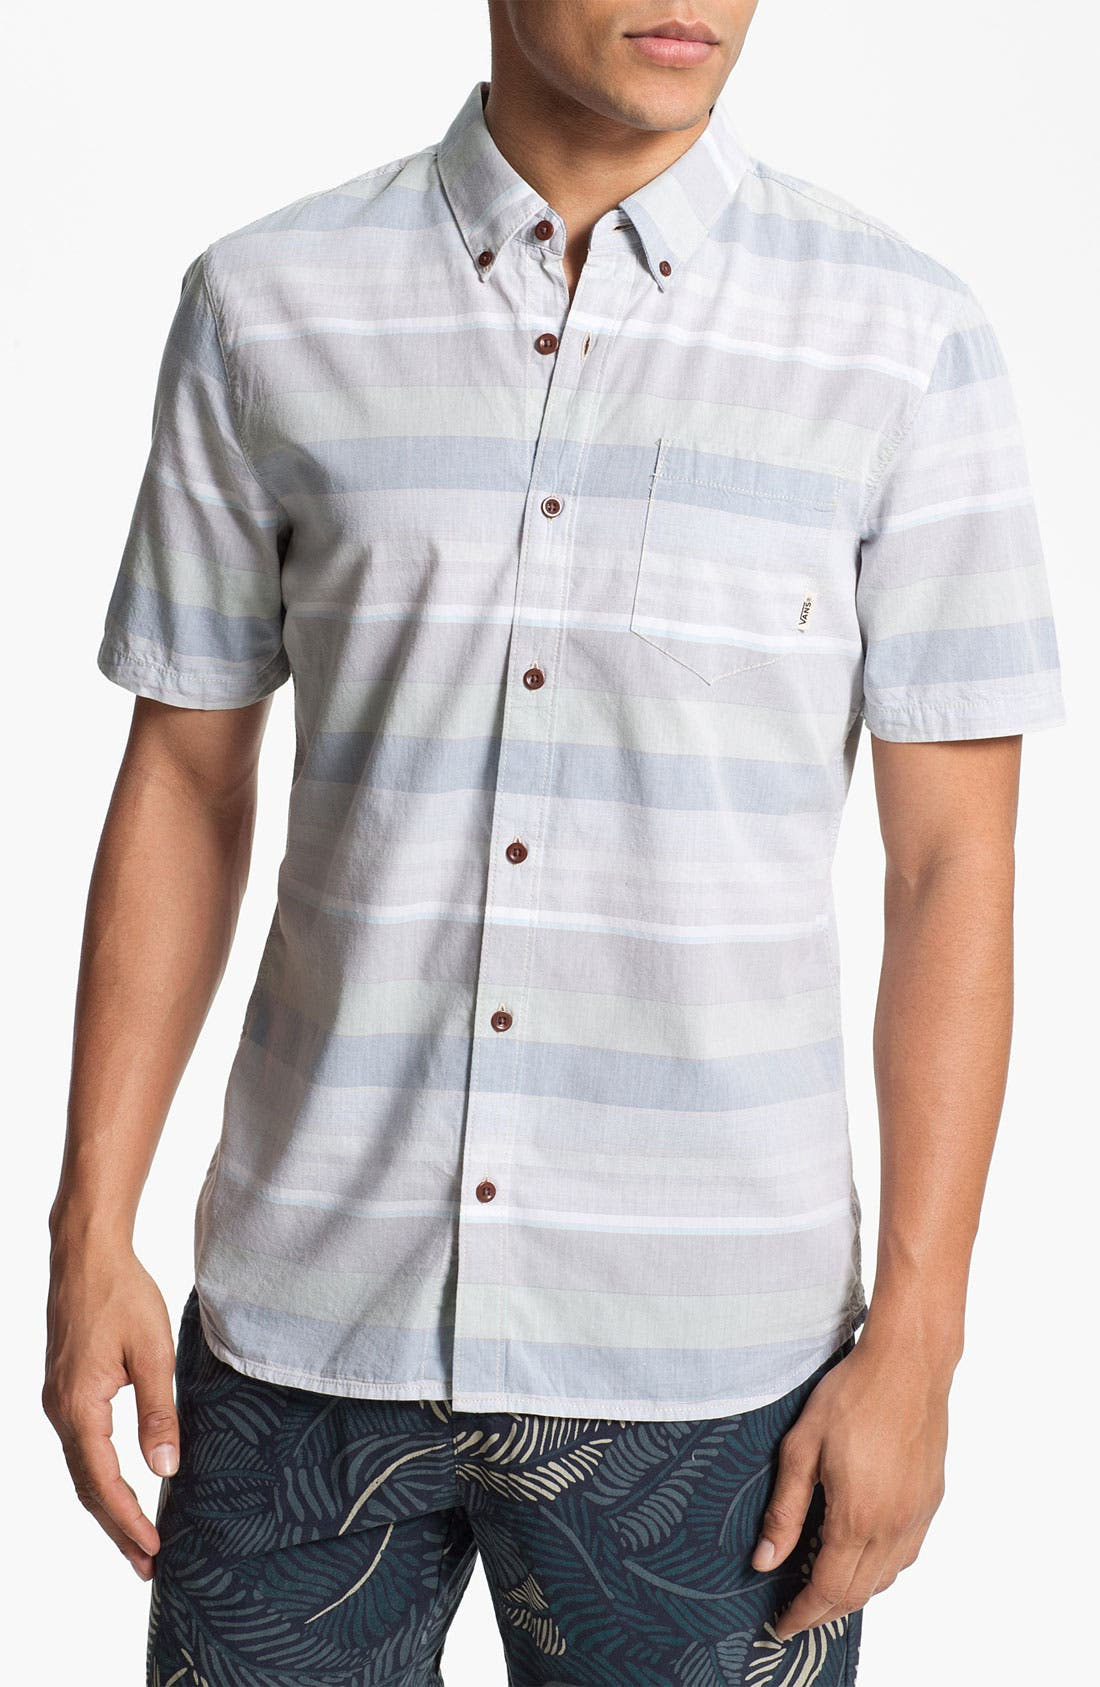 Alternate Image 1 Selected - Vans 'Wareham' Woven Shirt